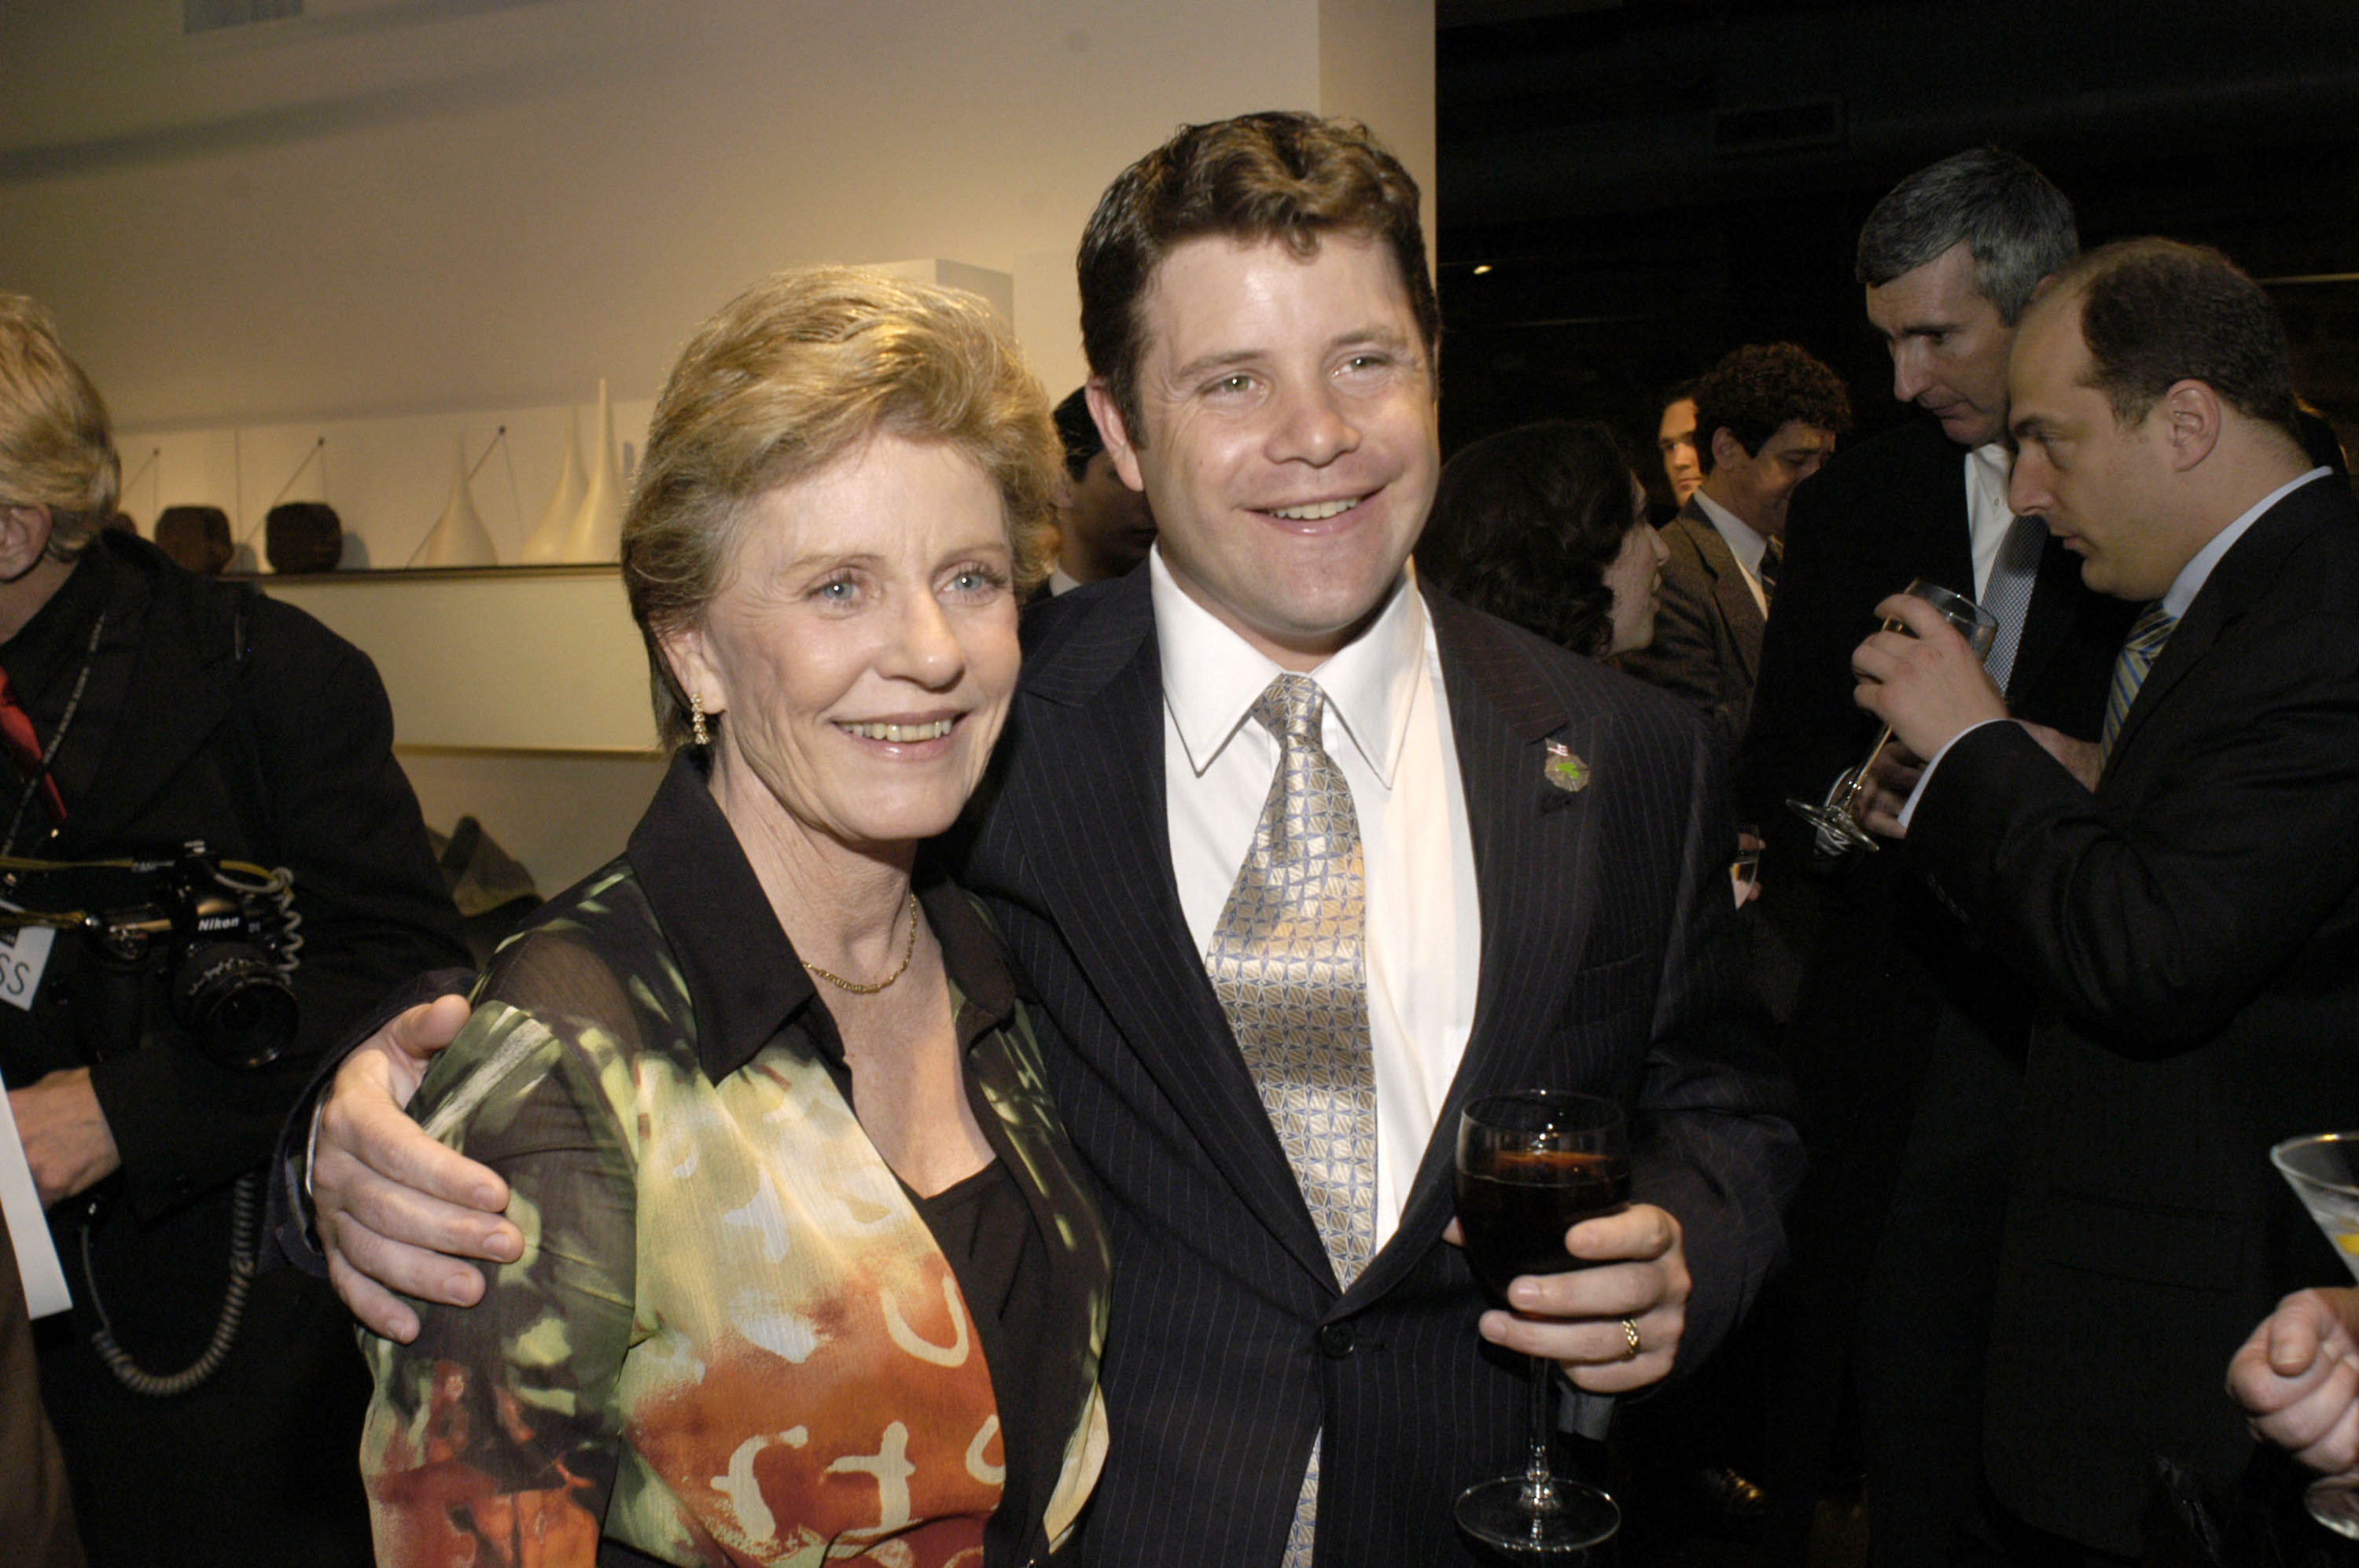 WASHINGTON, DC - MARCH 30: (U.S. TABS AND HOLLYWOOD REPORTER OUT) Actress Patty Duke attends the Creative Coalition's 2004 Capitol Hill Spotlight Awards ceremony with her son actor Sean Astin March 30, 2004 in Washington, DC. (Photo by David S. Holloway/Getty Images)